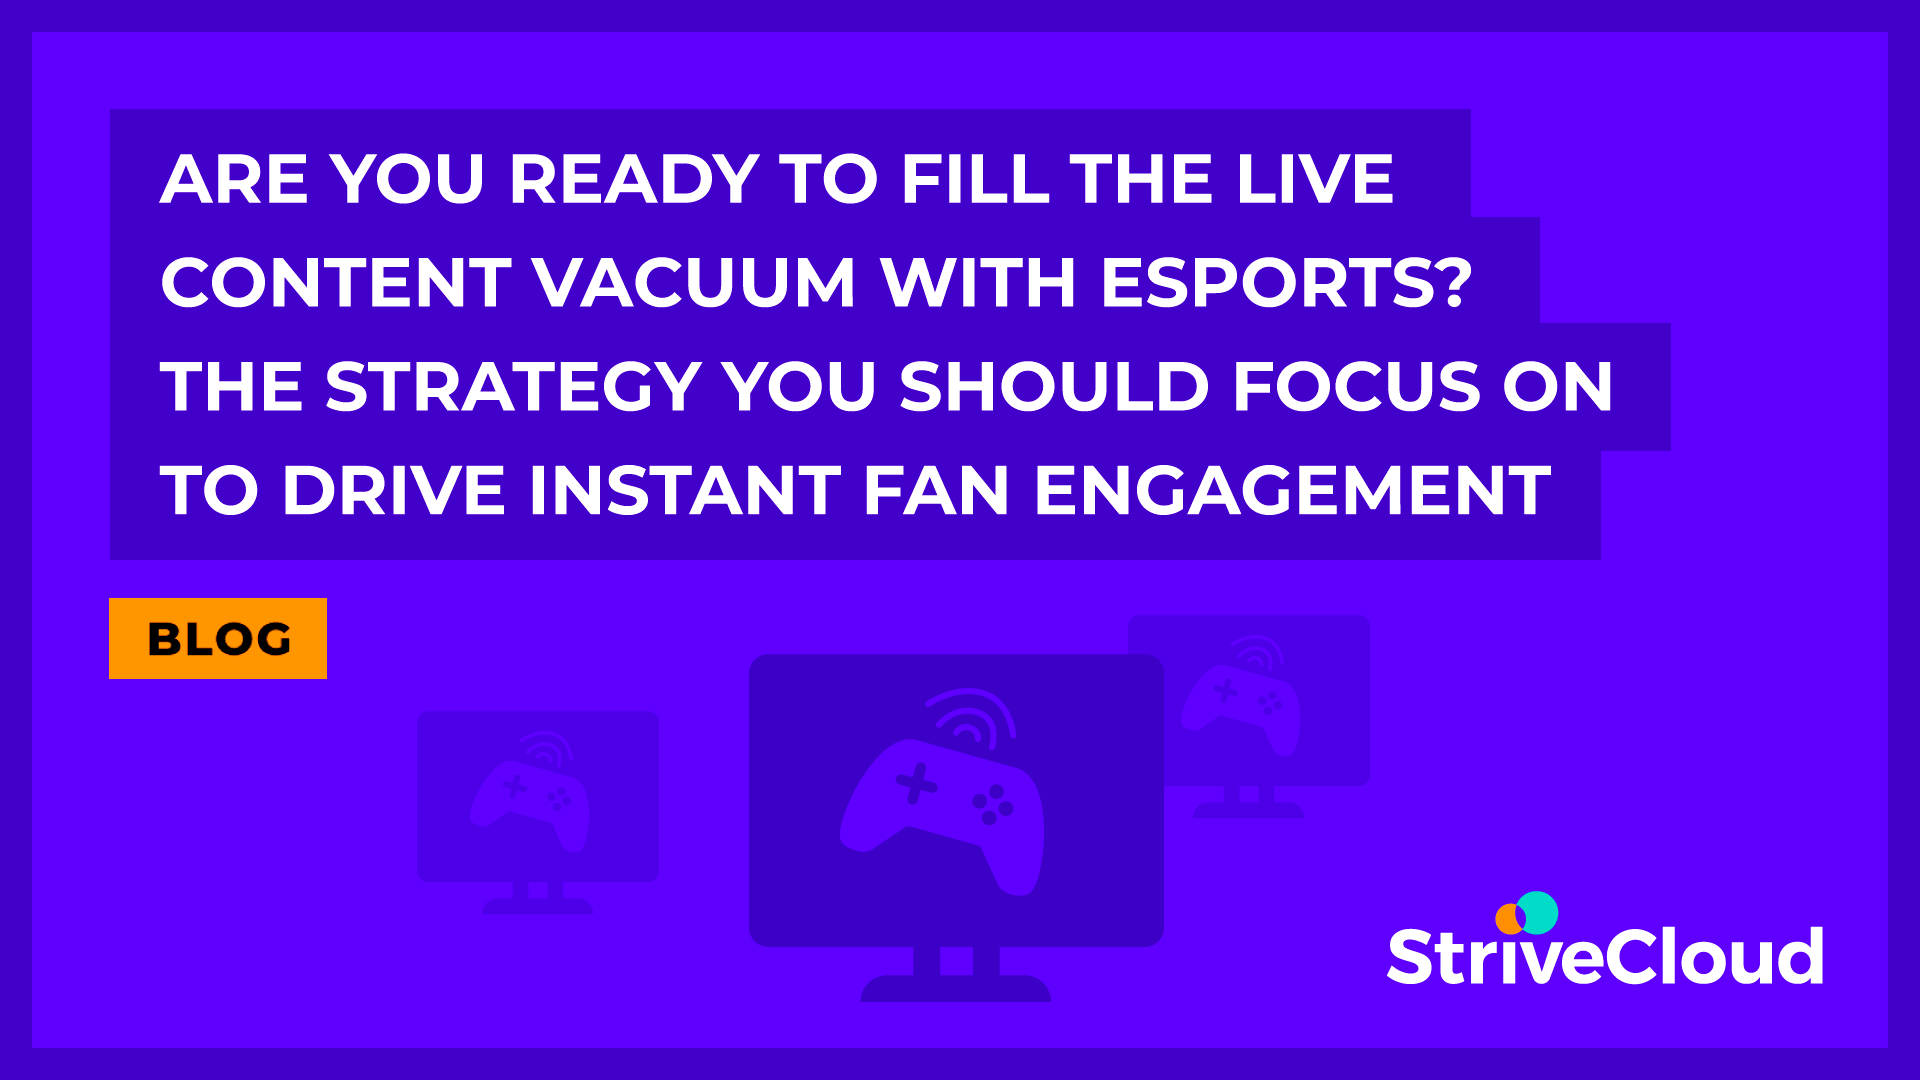 Are you ready to fill the live content vacuum with esports? The strategy you should focus on to drive instant fan engagement